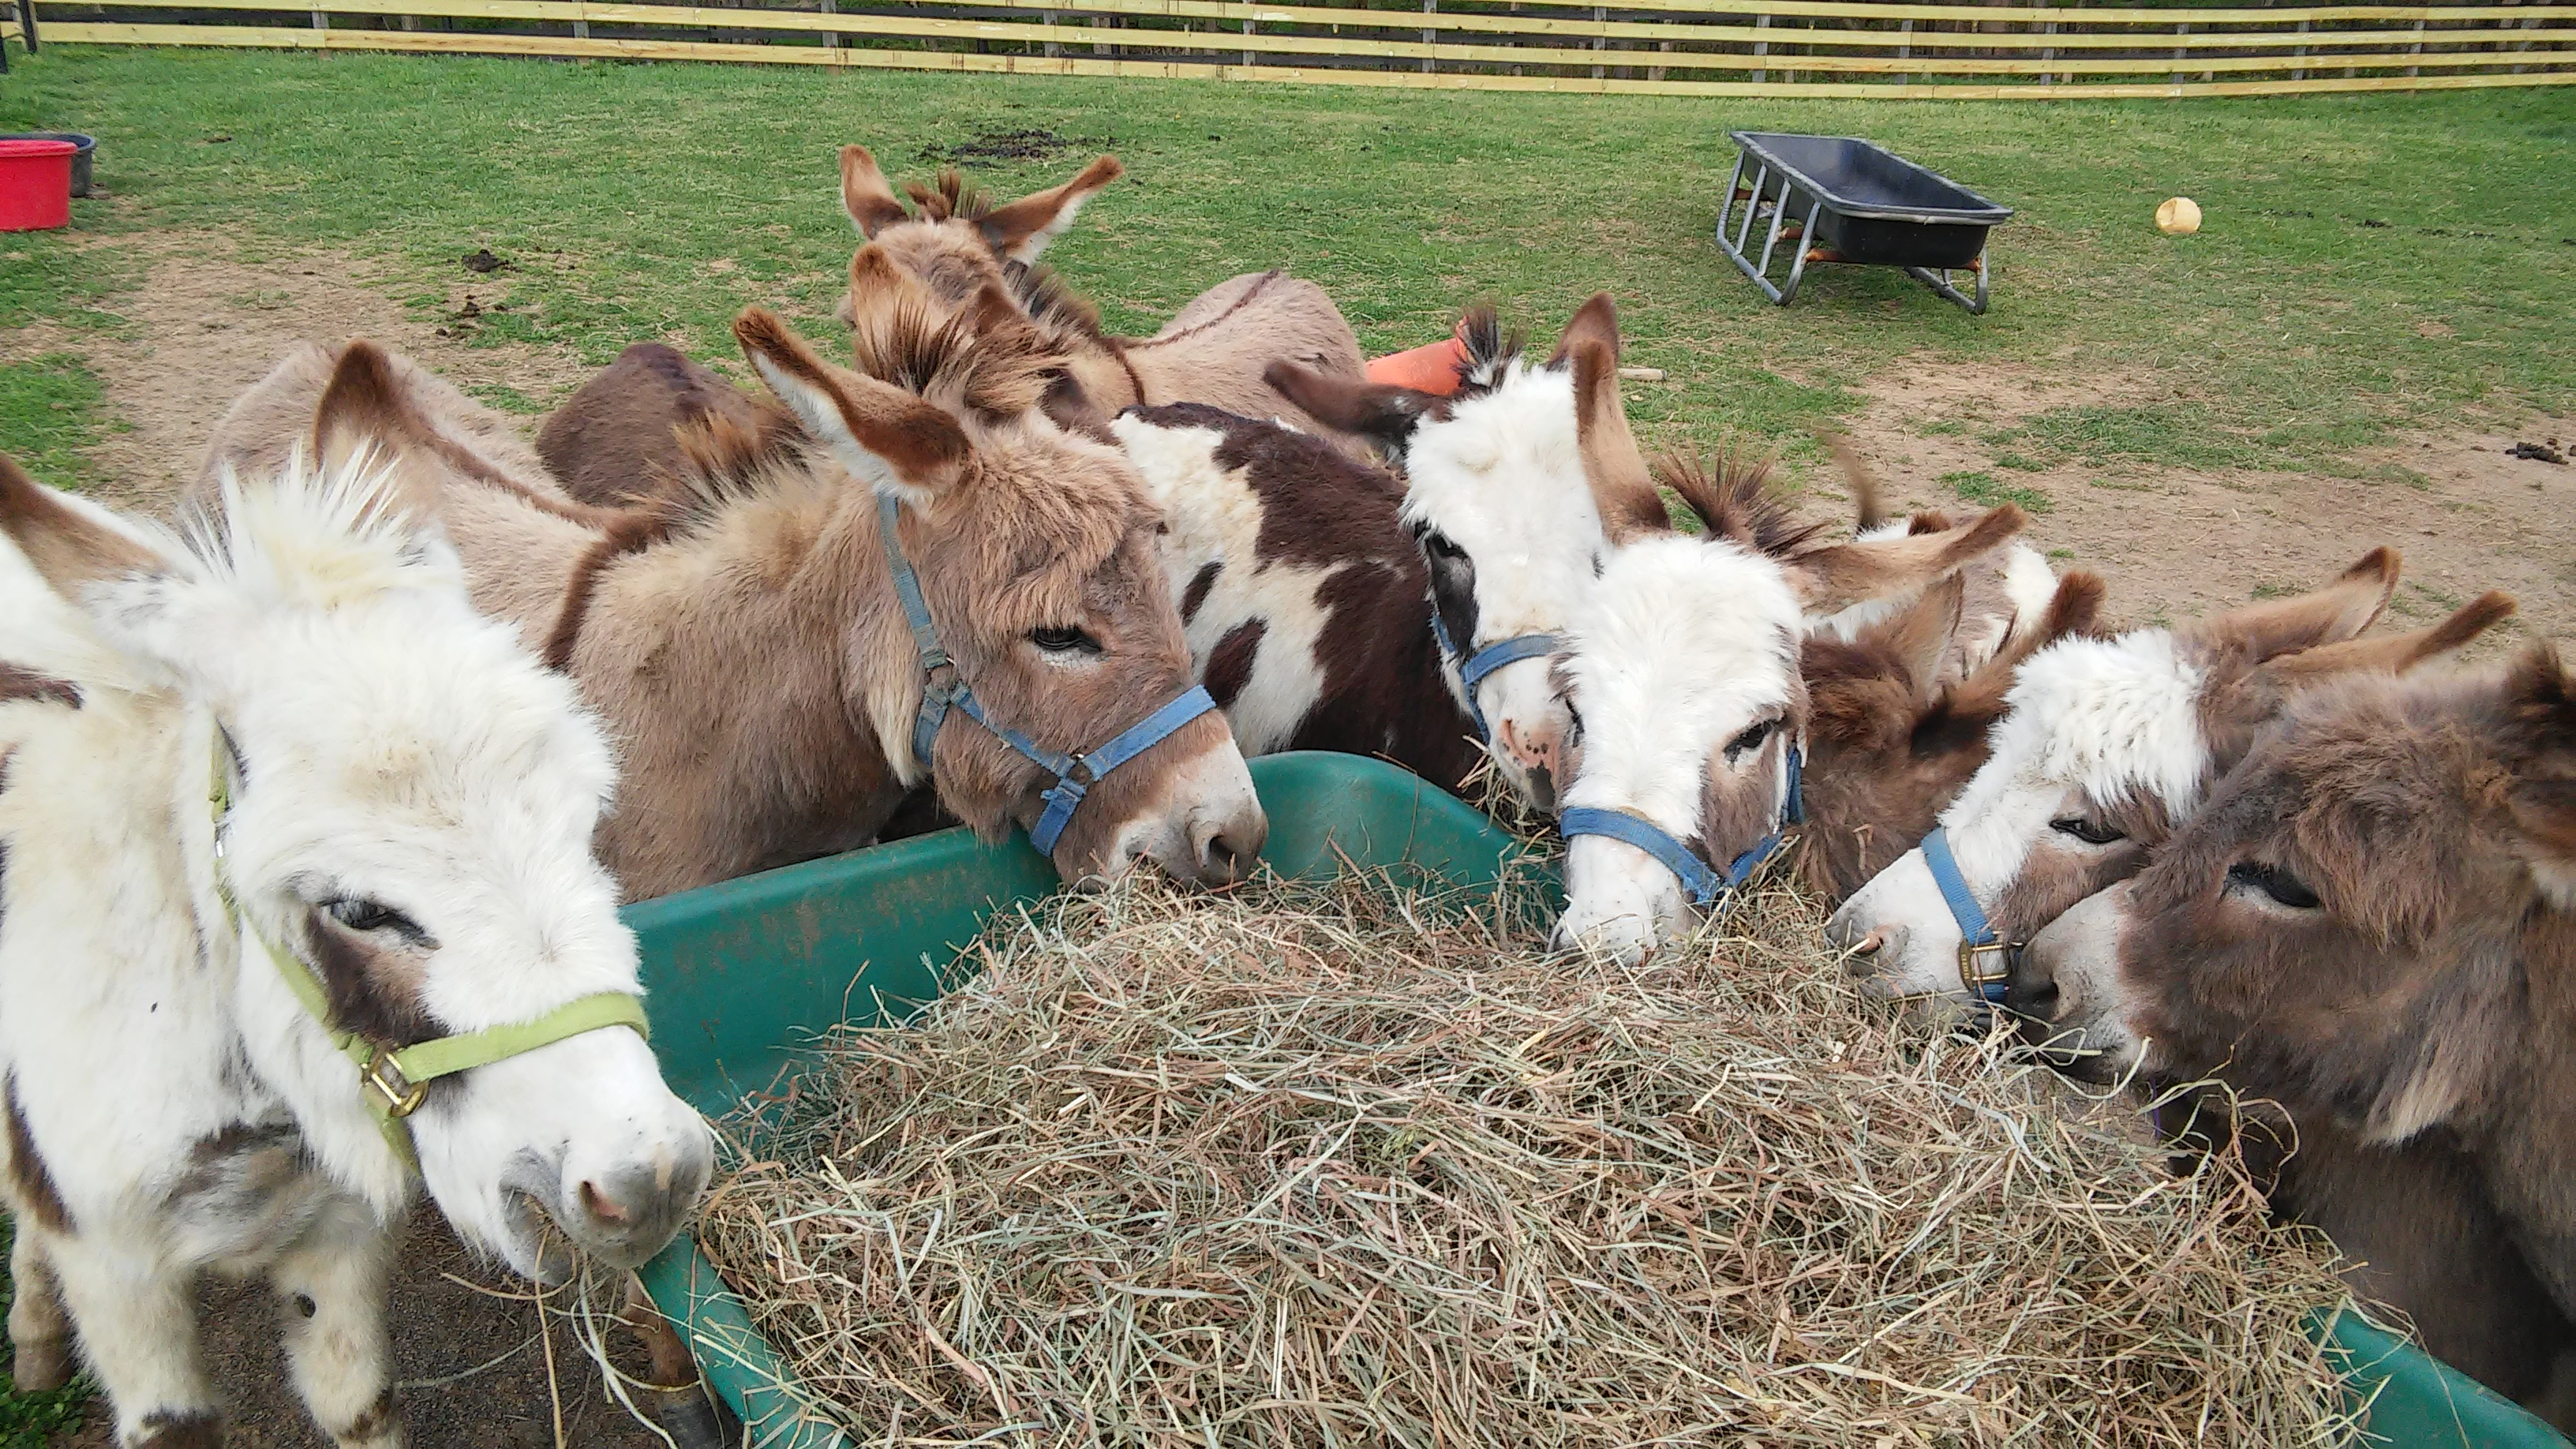 Donate Now to Help Rescue Miniature Donkeys image